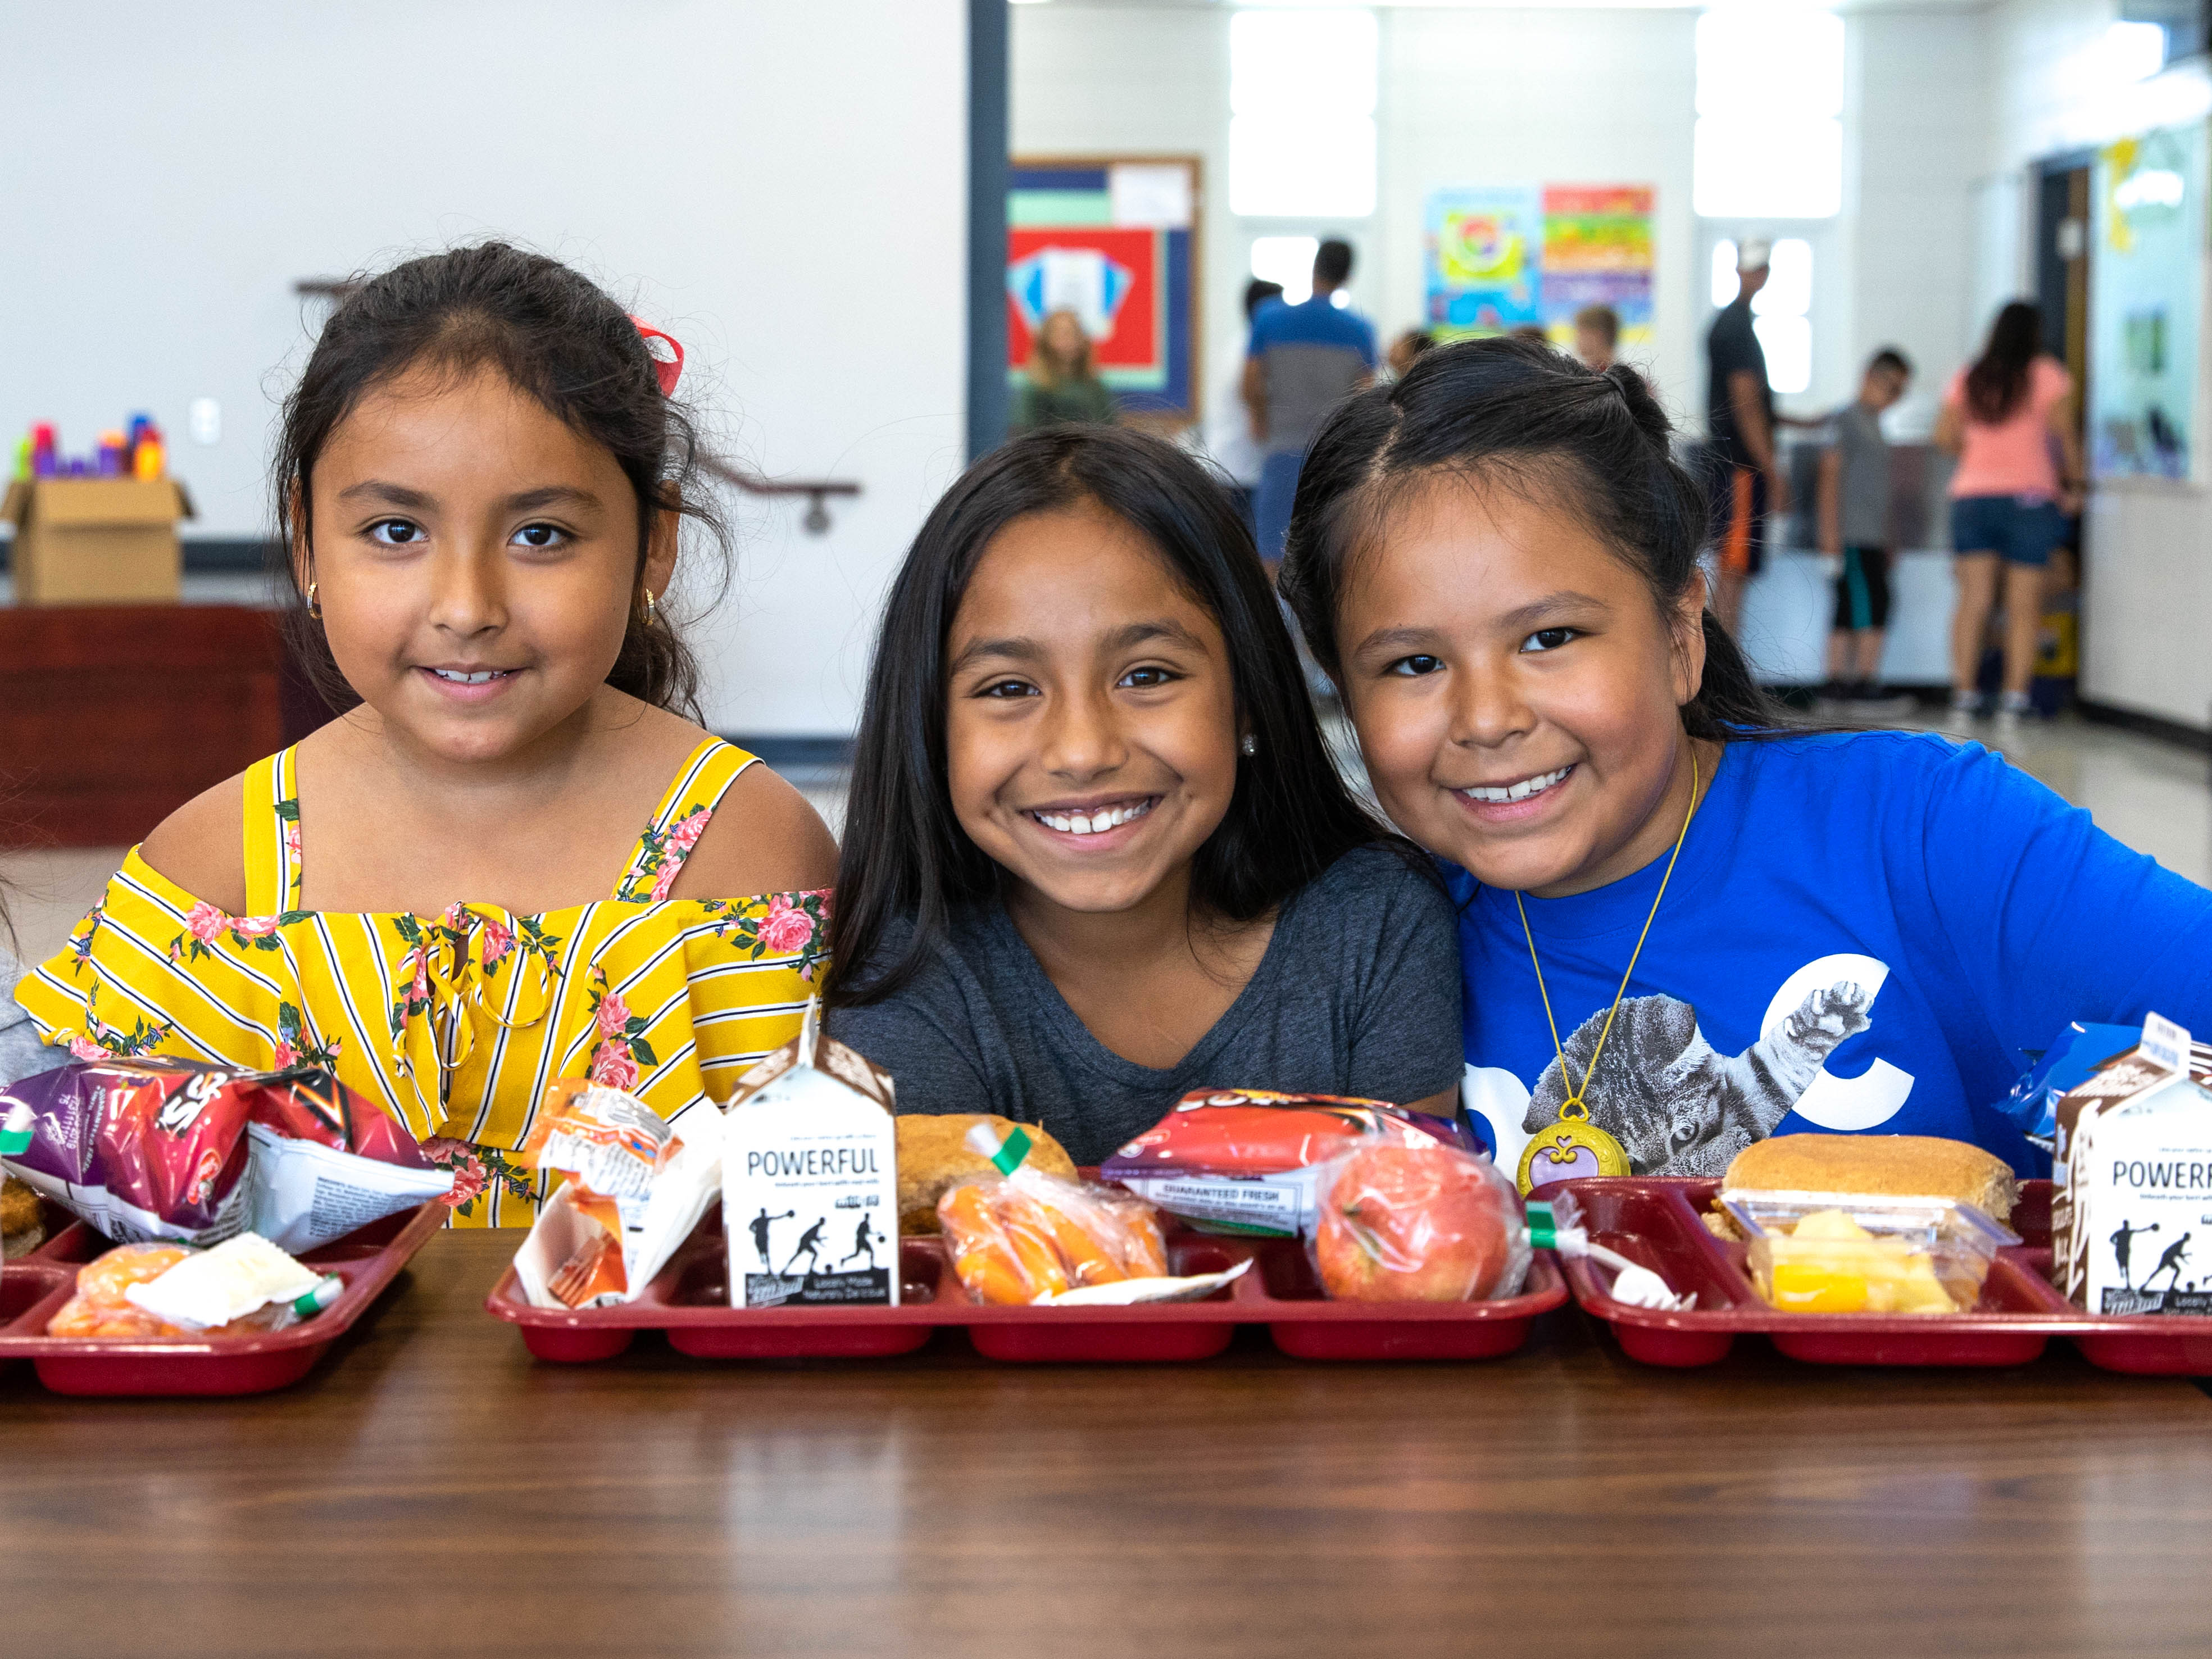 Photo of some students in the cafeteria.